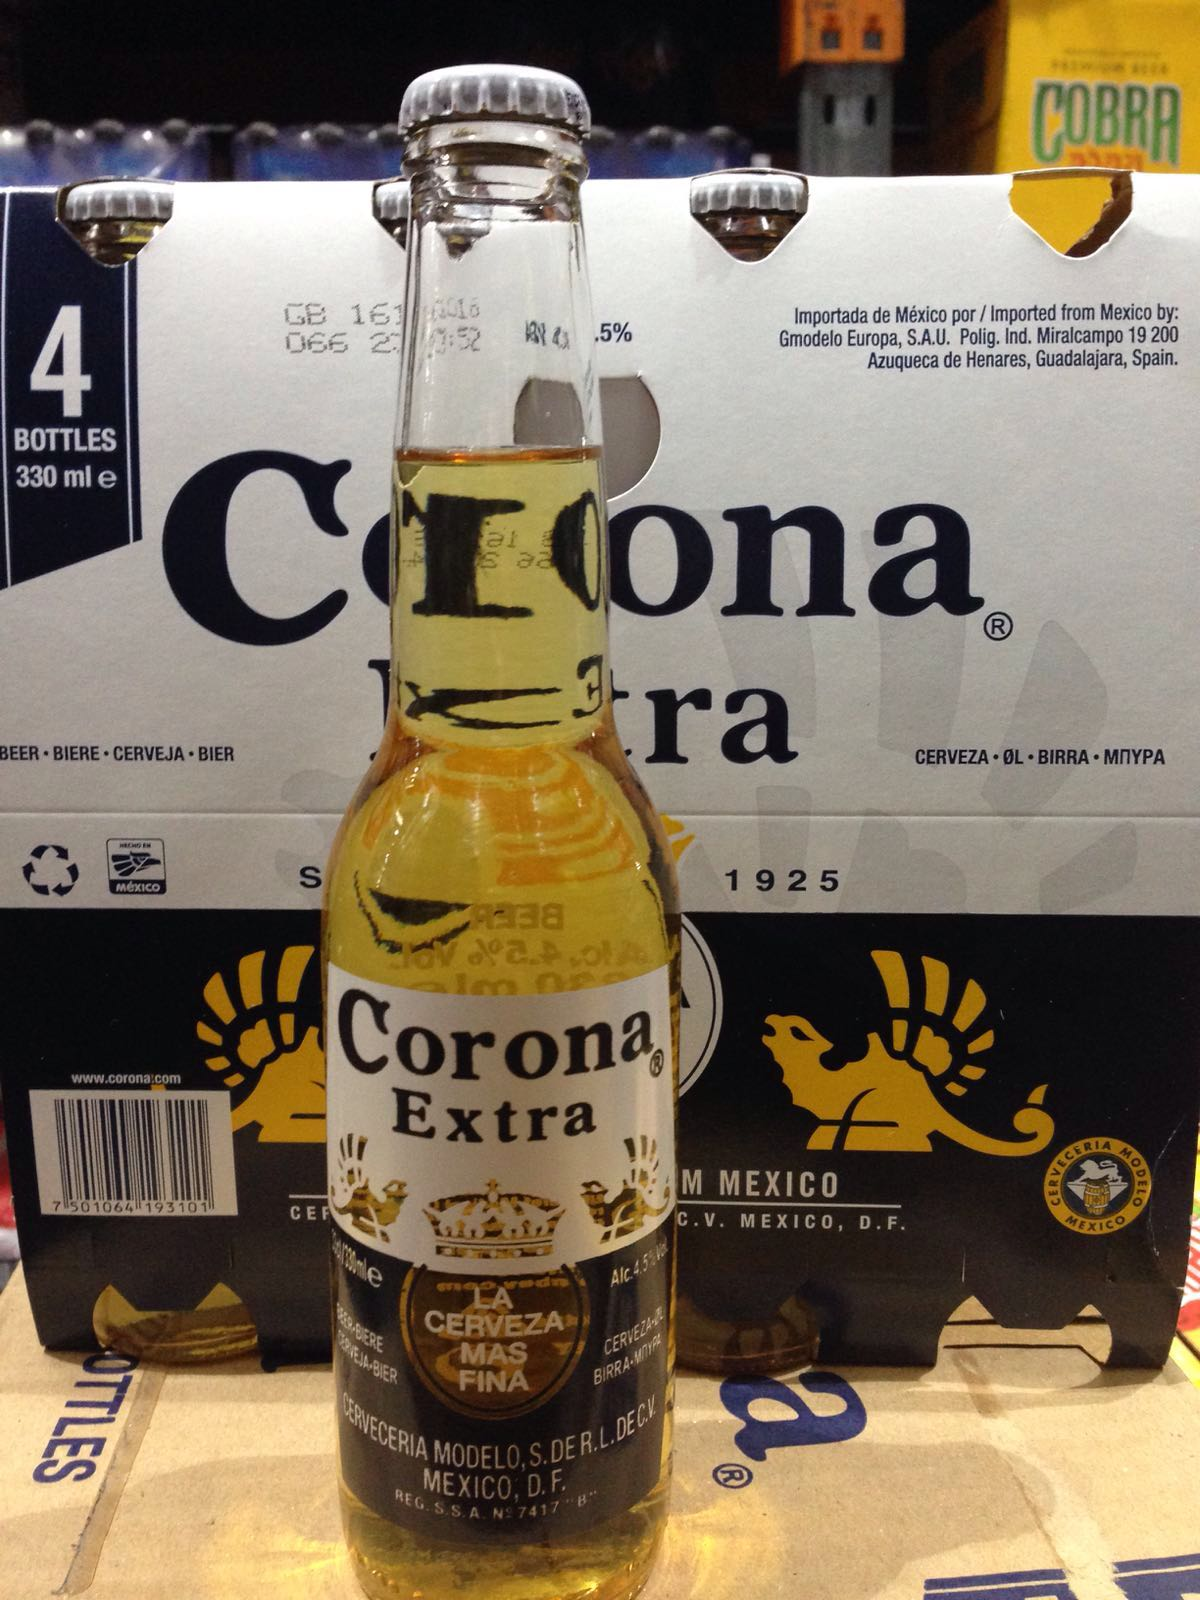 Corona beer,Bavaria beer and non alcoholic drinks cans and bottles 250ml and 330ml